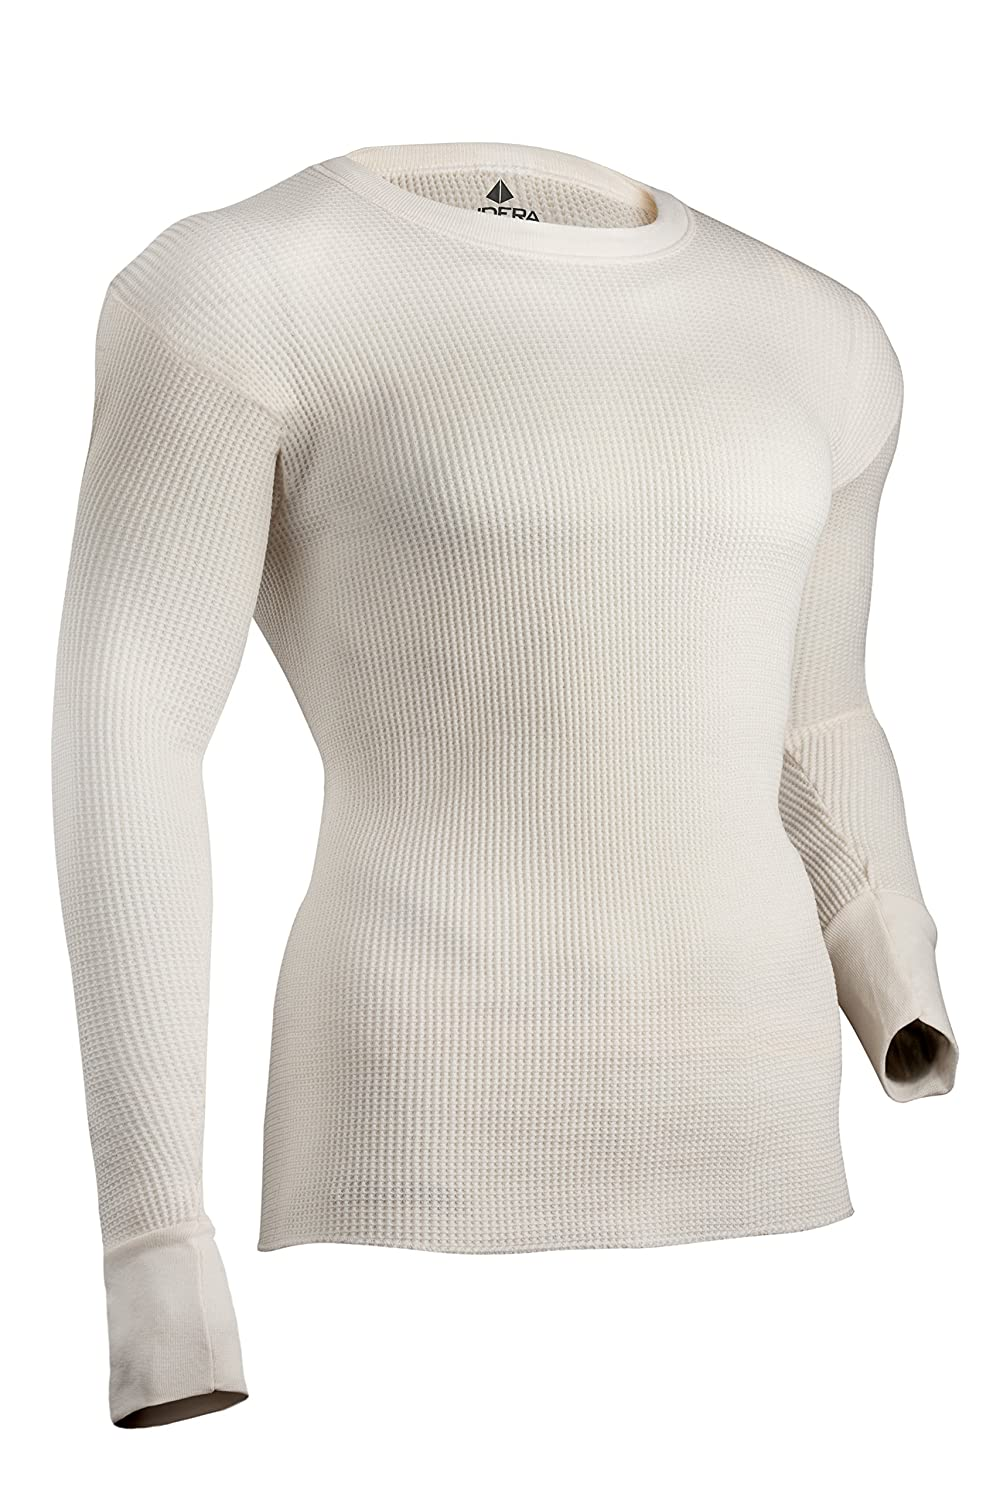 Indera Men's Maximum Weight Thermal Underwear Top ColdPruf Baselayer 822LS